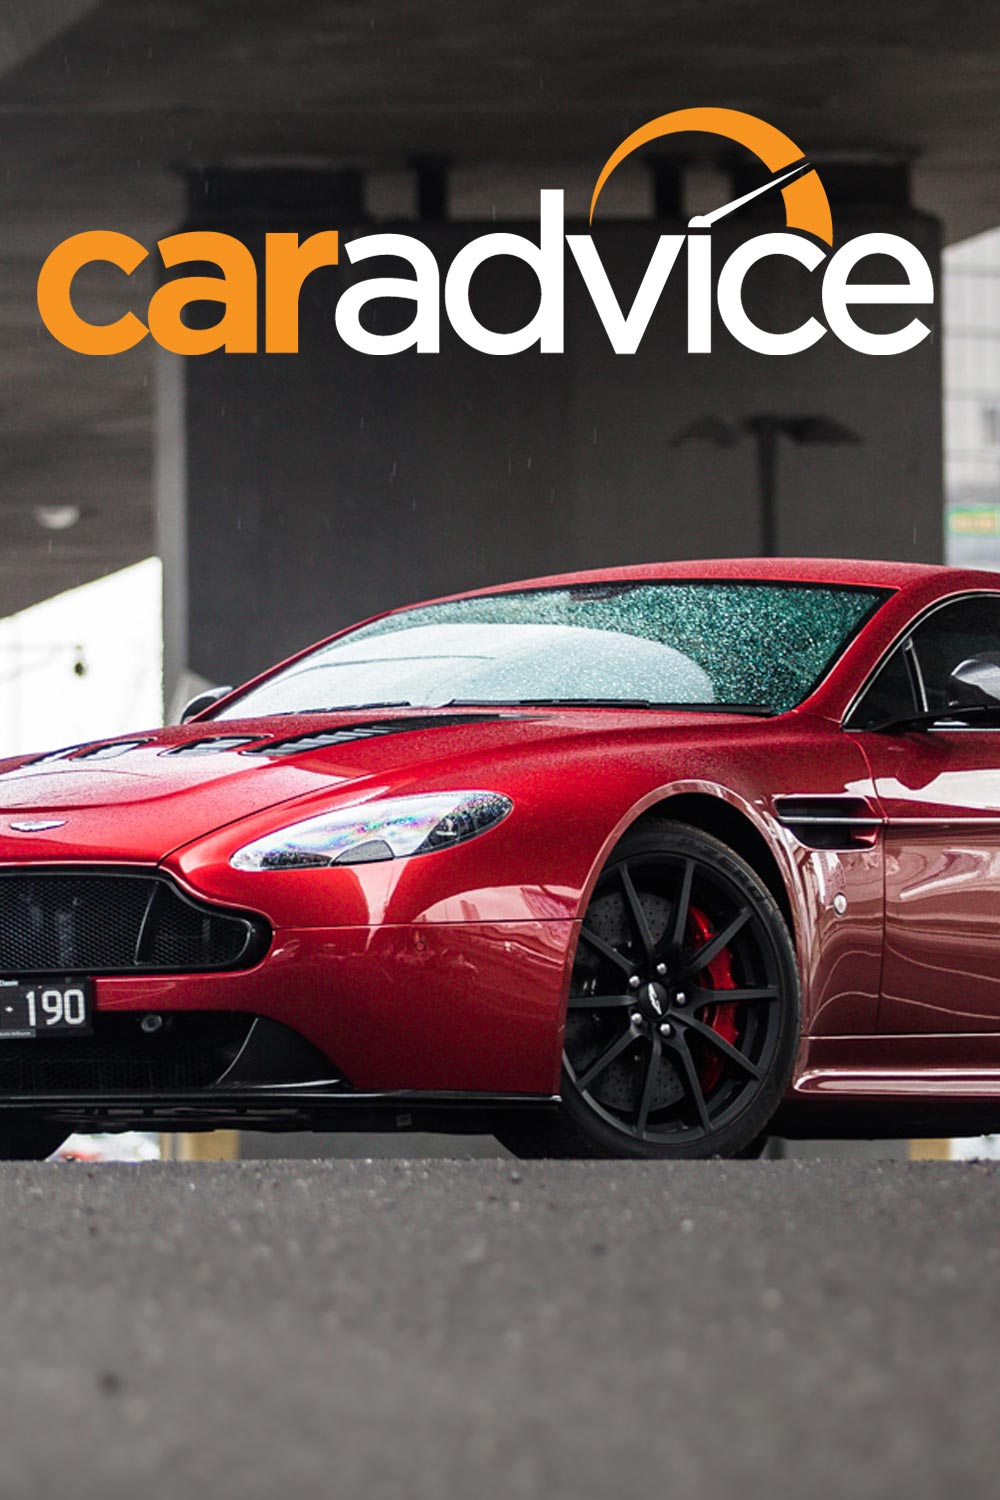 CarAdvice    YouTube is an integral component to CarAdvice.com.au's brand awareness and I've developed content strategy, SEO, and new production approaches to better leverage their video assets across channels.    VIEW PROJECT